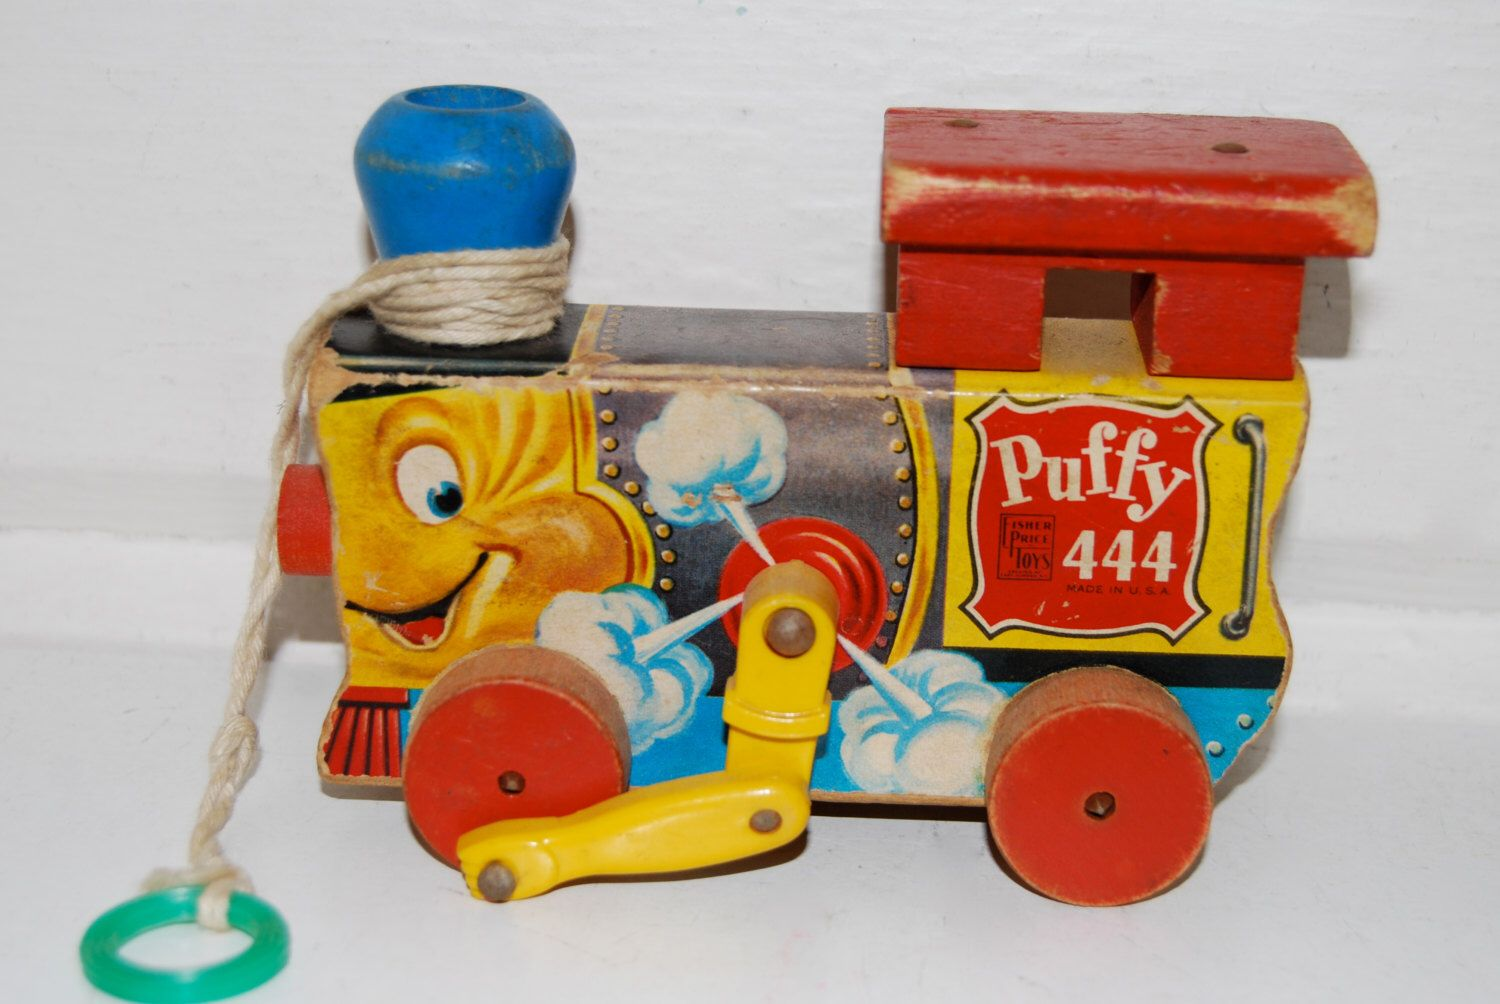 Vintage Fisher Price Puffy 444 Wooden Pull Toy by MilleBebe on Etsy https://www.etsy.com/listing/185355609/vintage-fisher-price-puffy-444-wooden